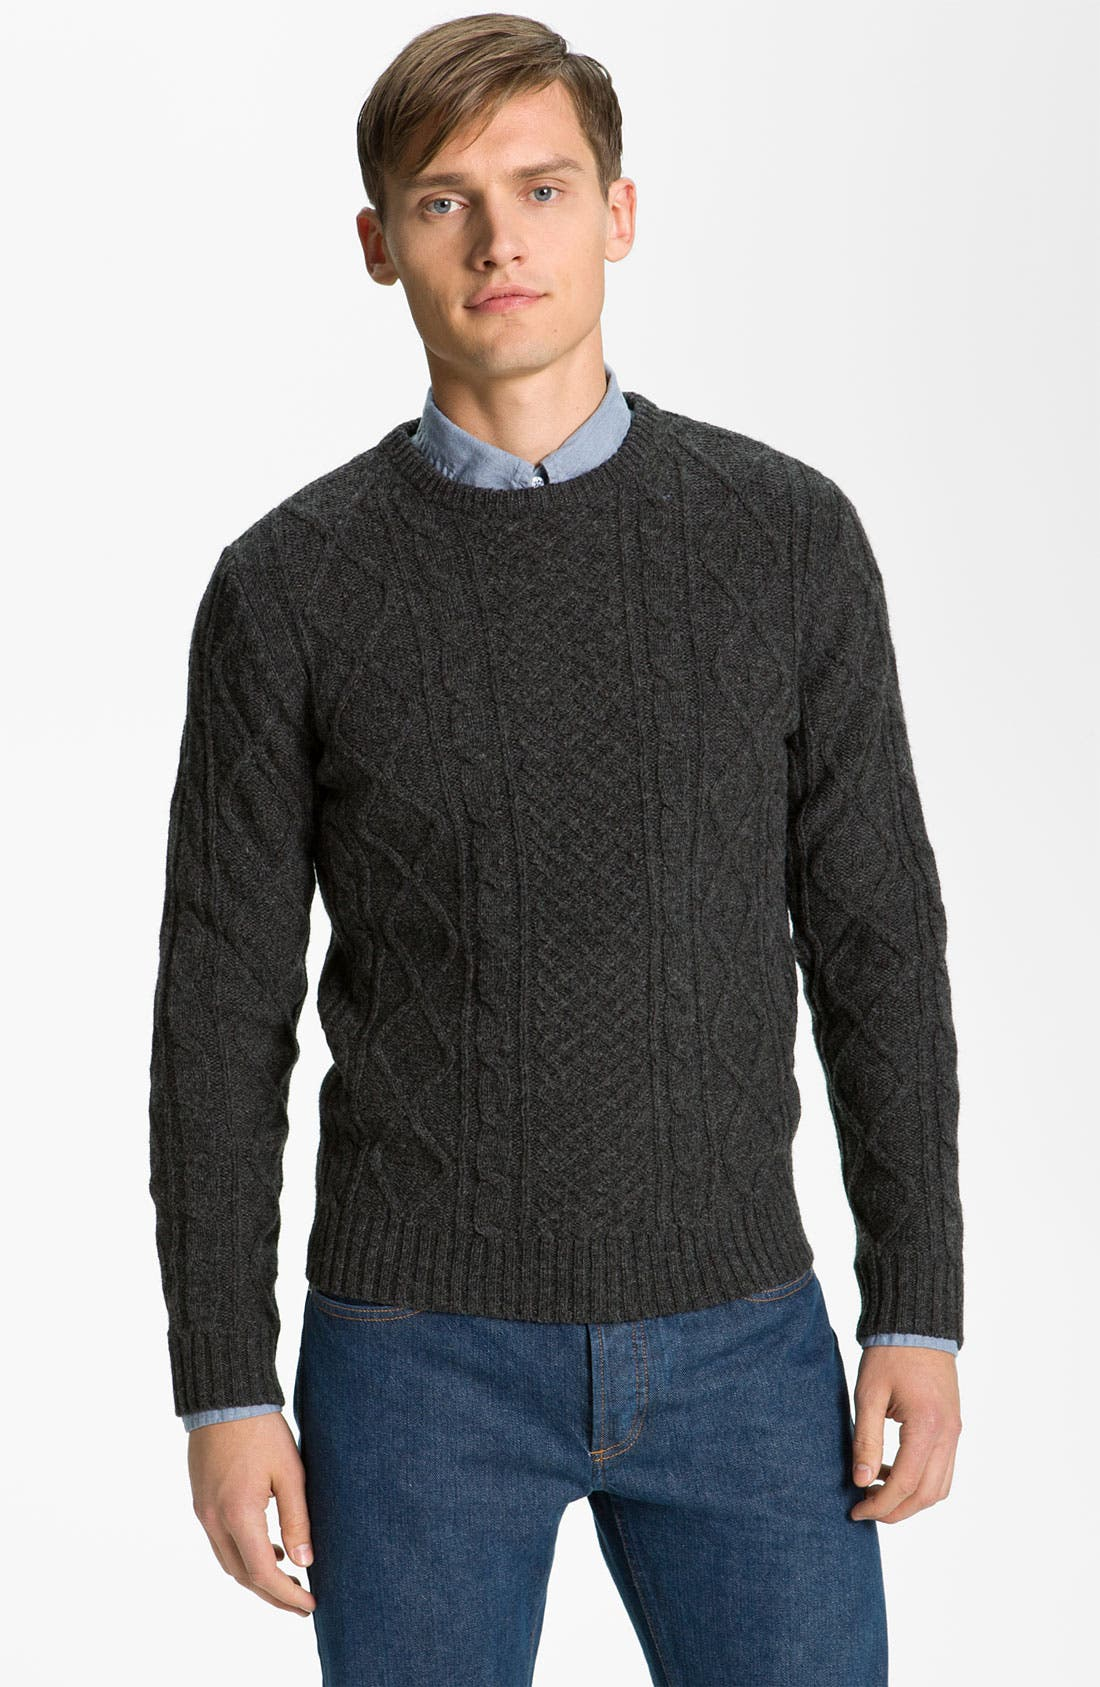 Alternate Image 1 Selected - A.P.C. 'Fisherman's' Lambswool Sweater